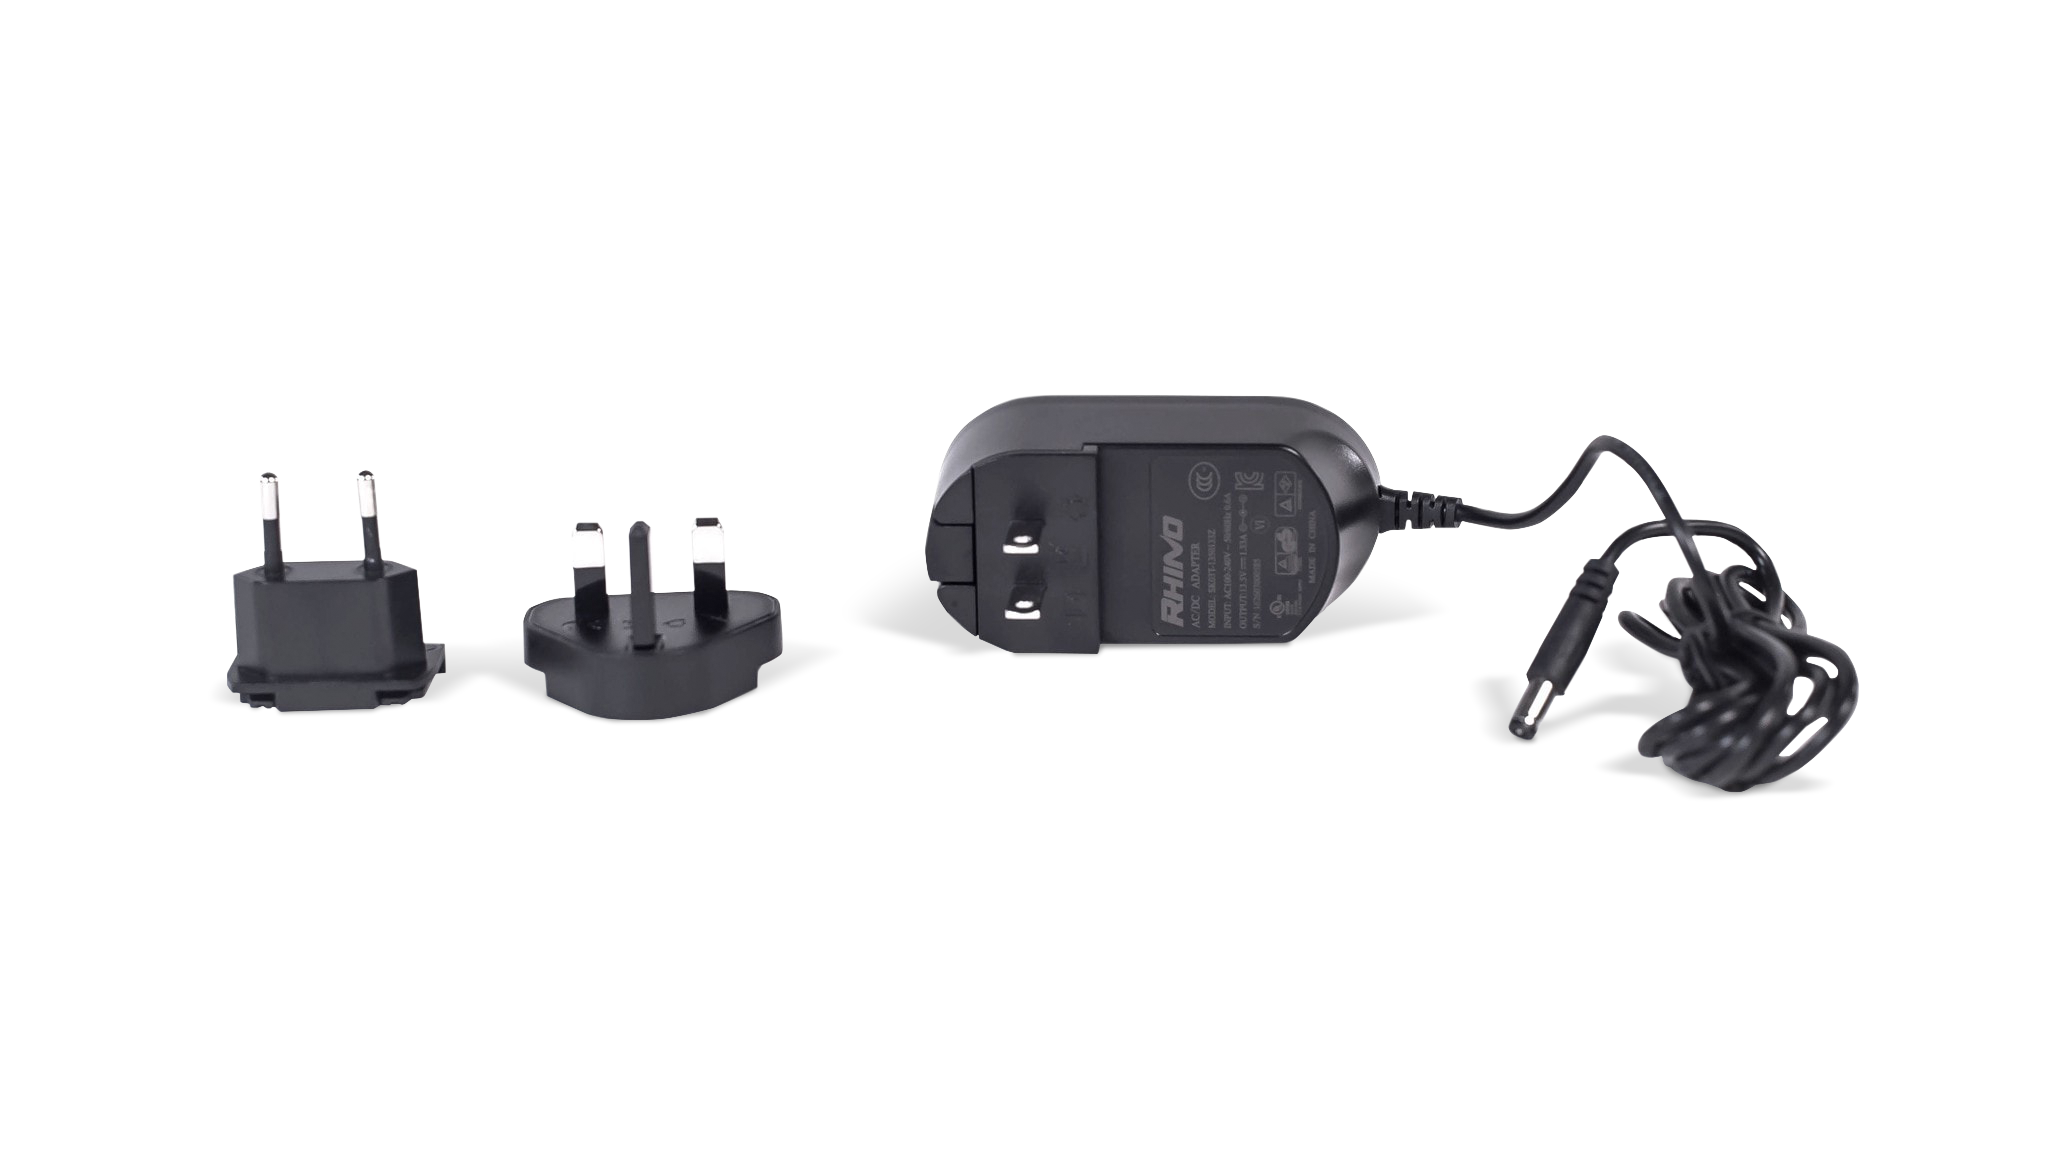 Rhino Motion Charger